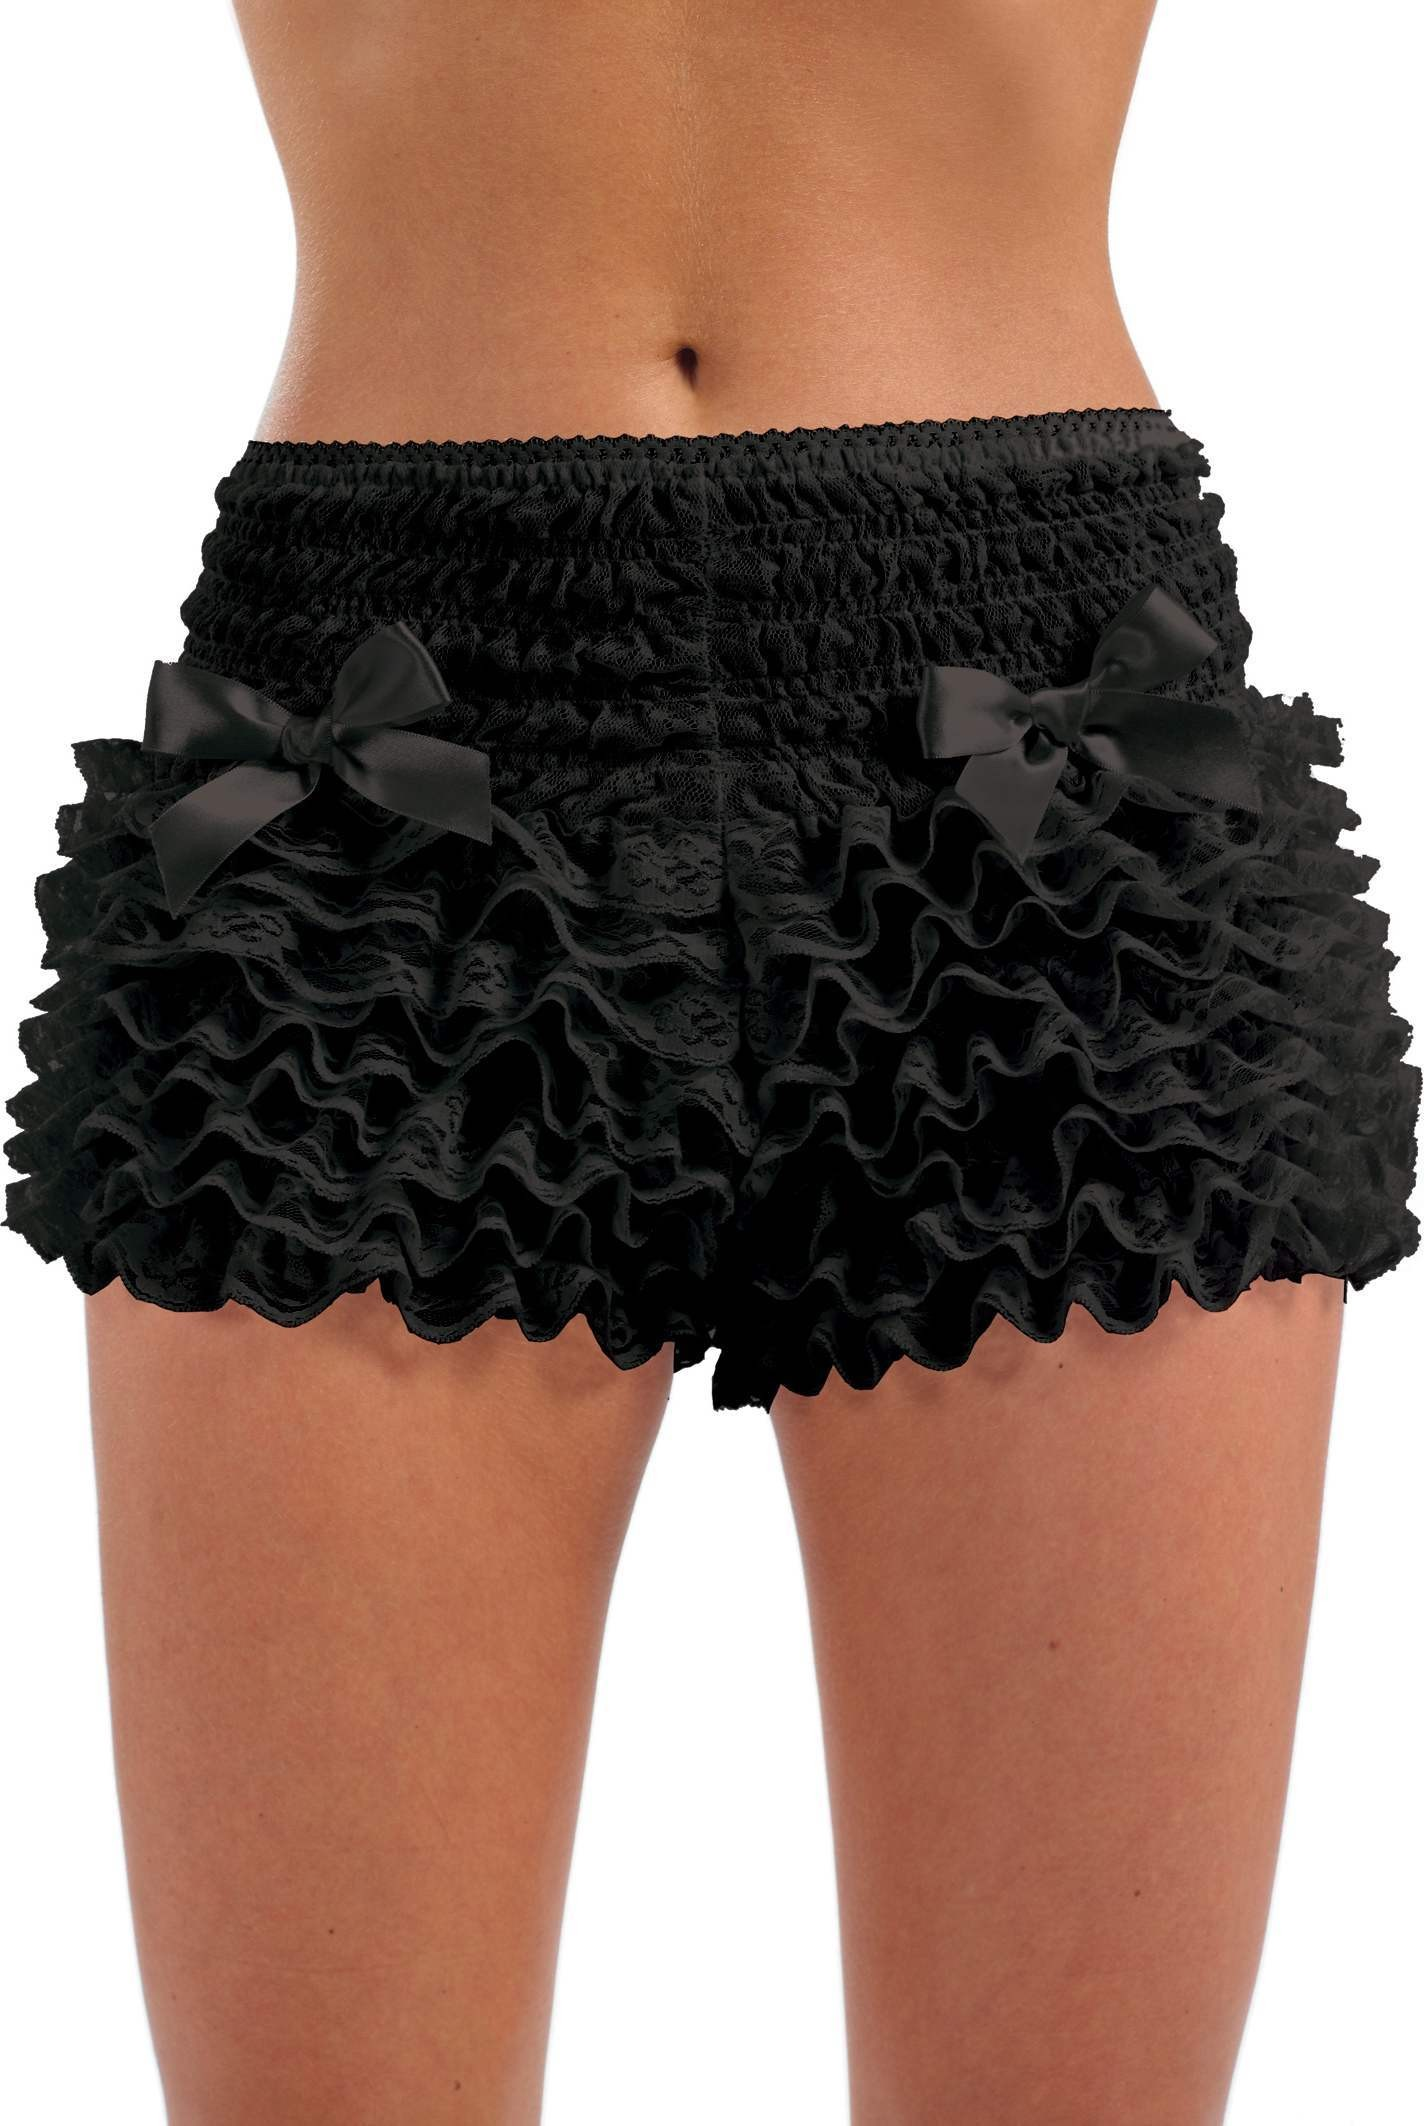 Black Ruffled Pants (Burlesque Fancy Dress)